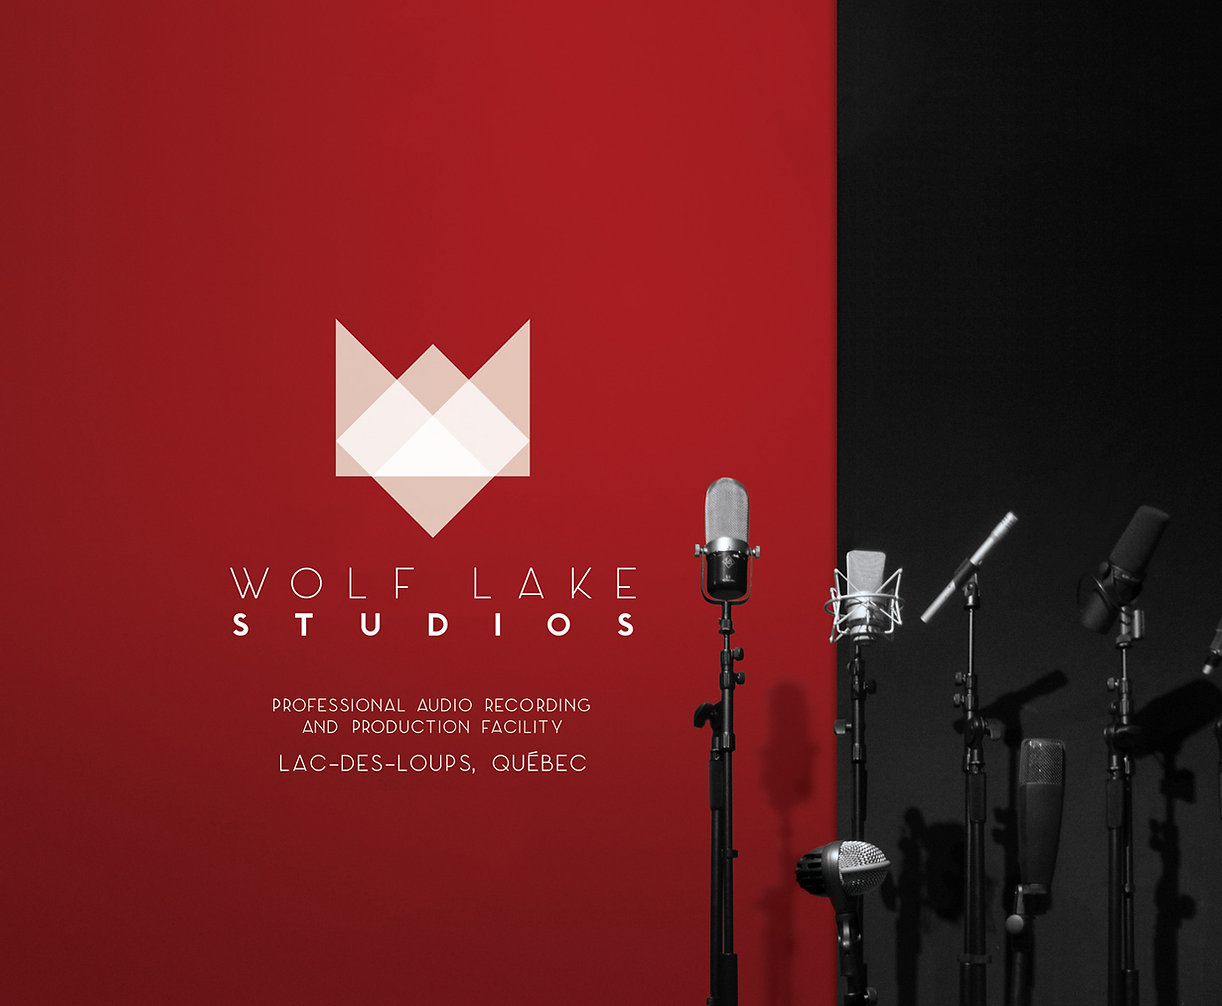 Wolf Lake Studios | Professional Audio Recording and Production Facility | Lac-des-Loups Quebec